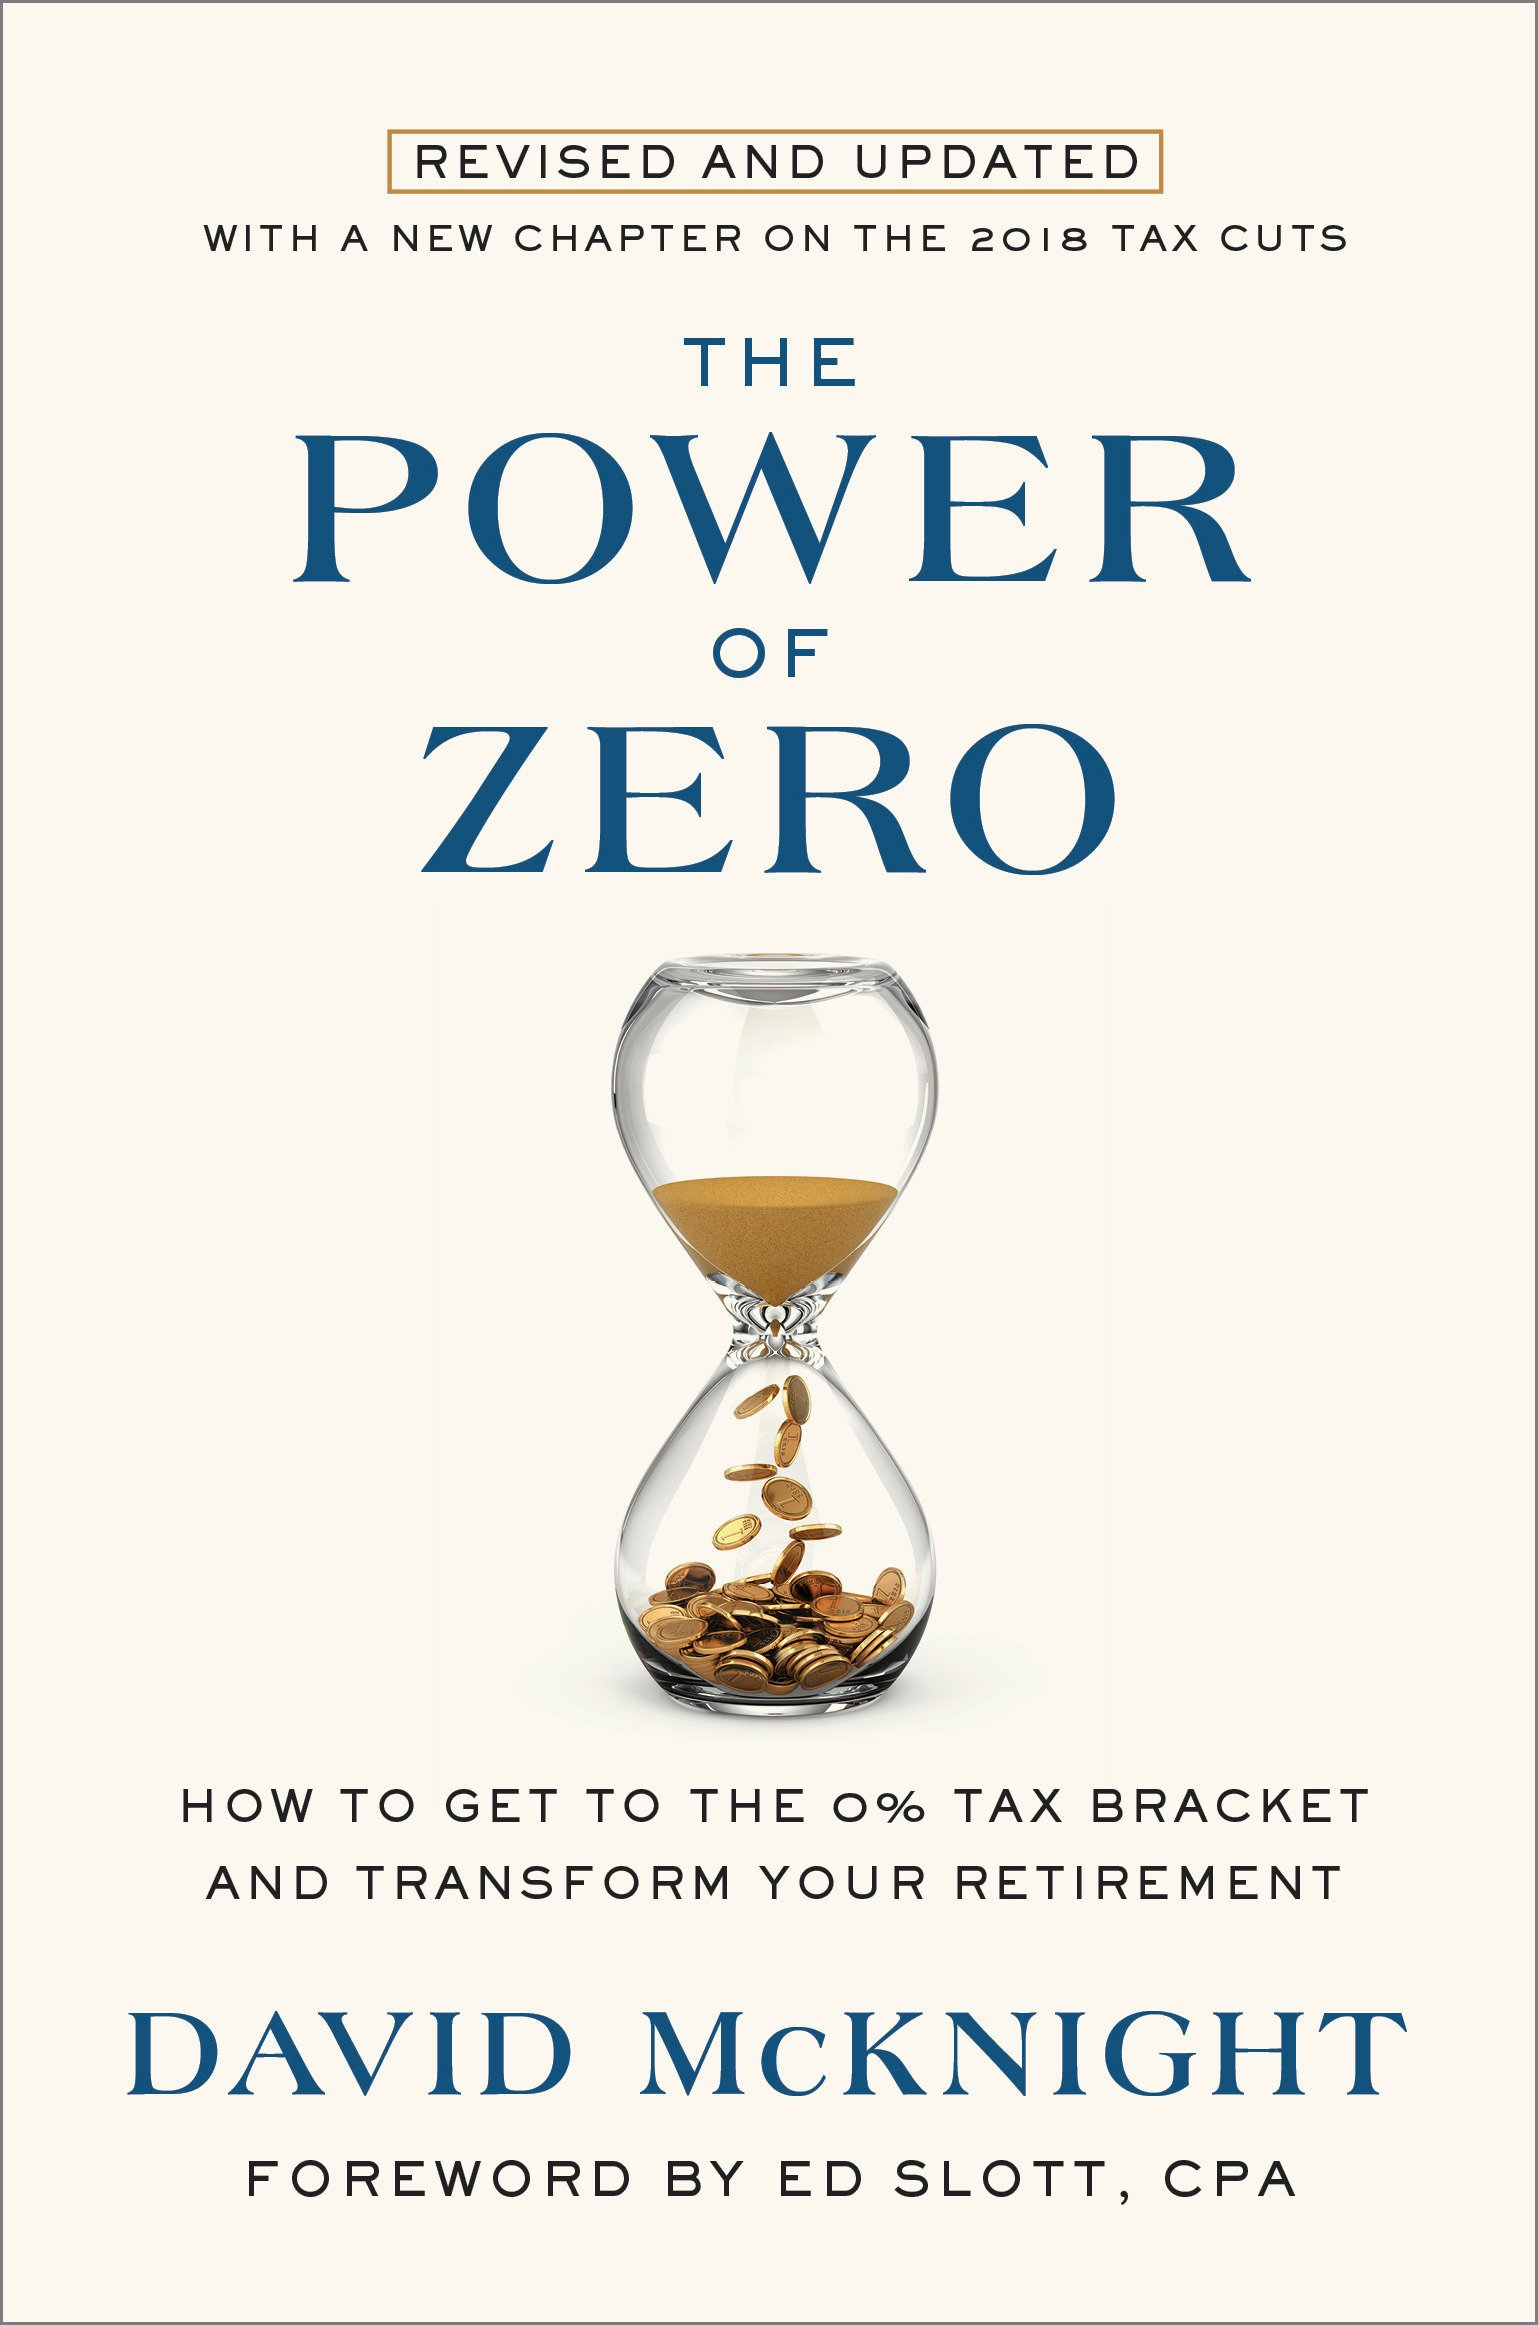 Power Zero Revised Updated Retirement product image